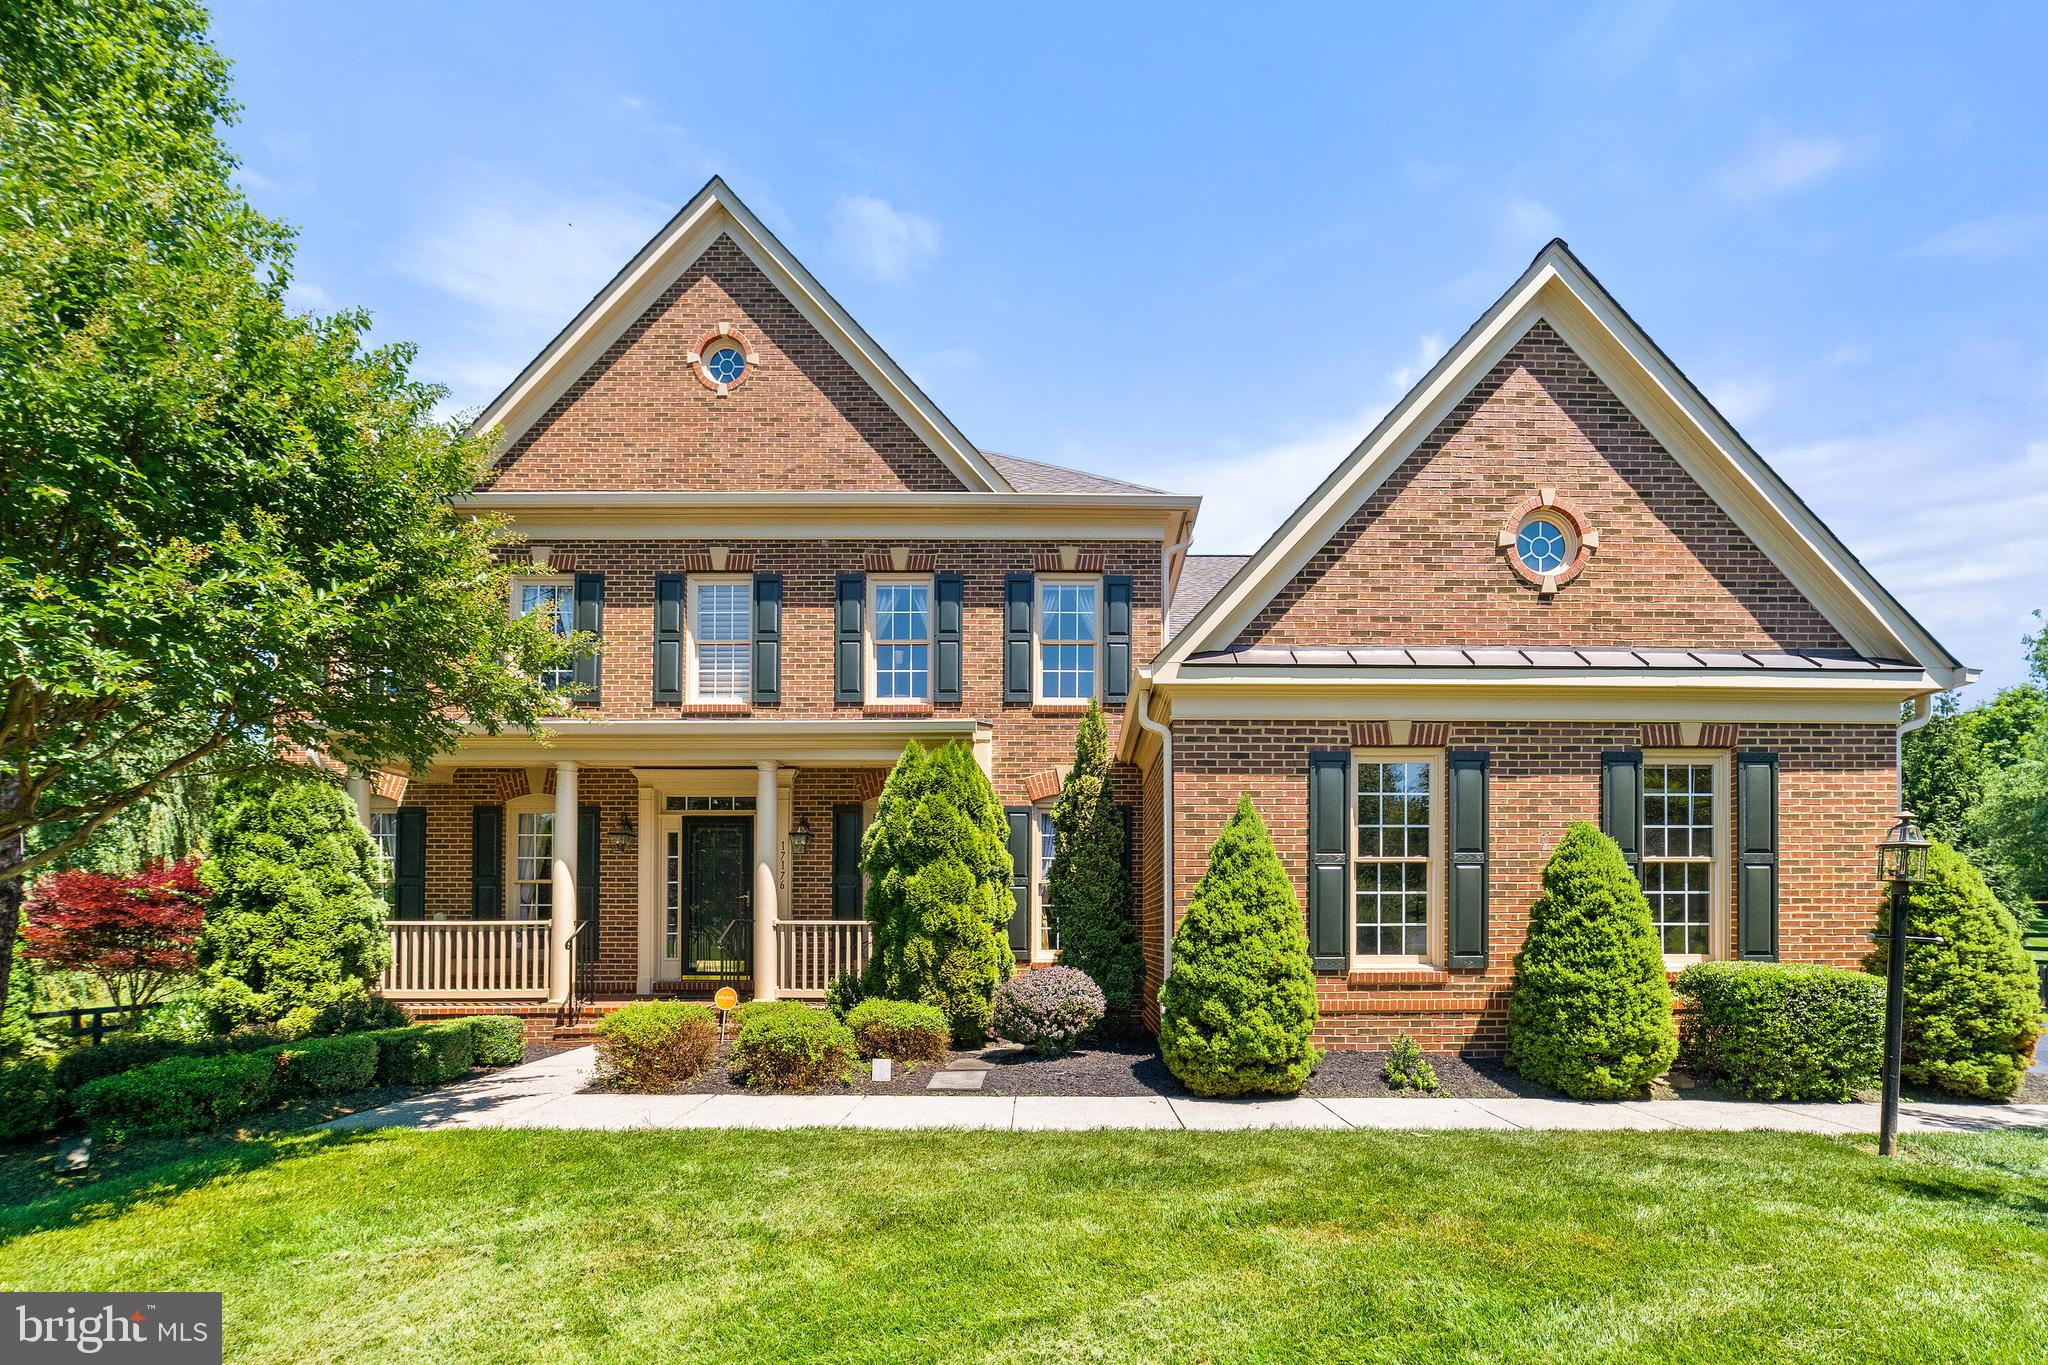 """Welcome Home to 17176 Westfield Pl., Hamilton VA 20158. Comcast Xfinity Highspeed Internet Available and Access to the WO&D Trail is Within Walking Distance of this Luxury Home Built in 2005. This Gorgeous All Brick Front Home Includes 6 Spacious Bedrooms, 4 Full Baths, 1 Half Bath, with 6,190 Estimate Square Feet of Finished Living Space. The Home is Perfectly Situated on 1.08 Fenced Acres, Simply Immaculate Inside & Out, with Gorgeous Design, Details and Upgrades Including Large Open Foyer with Dual Staircase to the Second Level, Hardwood Floors, Gourmet Kitchen with Granite Countertops, Large Island, Custom Tiled Baths, Crown Molding, Wainscoting, Ceiling Fans, French Doors, and a Large Finished Basement with Walk-Up Egress to Fenced Backyard. The Well-Maintained Front Yard Includes Extensive Beautiful and Mature Landscaping that Leads to the Elongated Brick Front Porch and Entryway to the Home. The Main Floor Features 9' Ceilings, Recessed Lighting, Floor to Ceiling Windows to Provide Natural Light Throughout the Home, an Open Floor Plan for Family Gatherings and Entertaining. The Home Includes a Formal Living & Dining Room, an Inviting and Cozy Family Room with Gas Burning Fireplace with Mantel, Private Office, and Sunroom. The Large Gourmet Kitchen is Well Equipped with a 5 Burner Gas Cooktop, 2 Wall Ovens, Microwave, Dishwasher, Refrigerator, Granite Countertops, 42"""" Cabinets with Pull Out Drawers, Large Walk-In Pantry, Built-In Desk Area, and an Eat-In Kitchen Area that is Open to the Family Room. Laundry Room is Located on Main Level Off of the Kitchen with Access to the 3 Car Garage. The Indoor Living Space Extends to the Outdoor Living Area from the Sunroom to the Large Slate Patio with Lighted Stone Columns, 3 Large Pergolas with Outdoor Ceiling Fan with Open Large Back Yard Completely Fenced and Beautifully Landscaped with Matured Trees Along with Large Outdoor Storage Shed. The Second Level Includes a Large Owners Suite with its Own Private Sitting Are"""